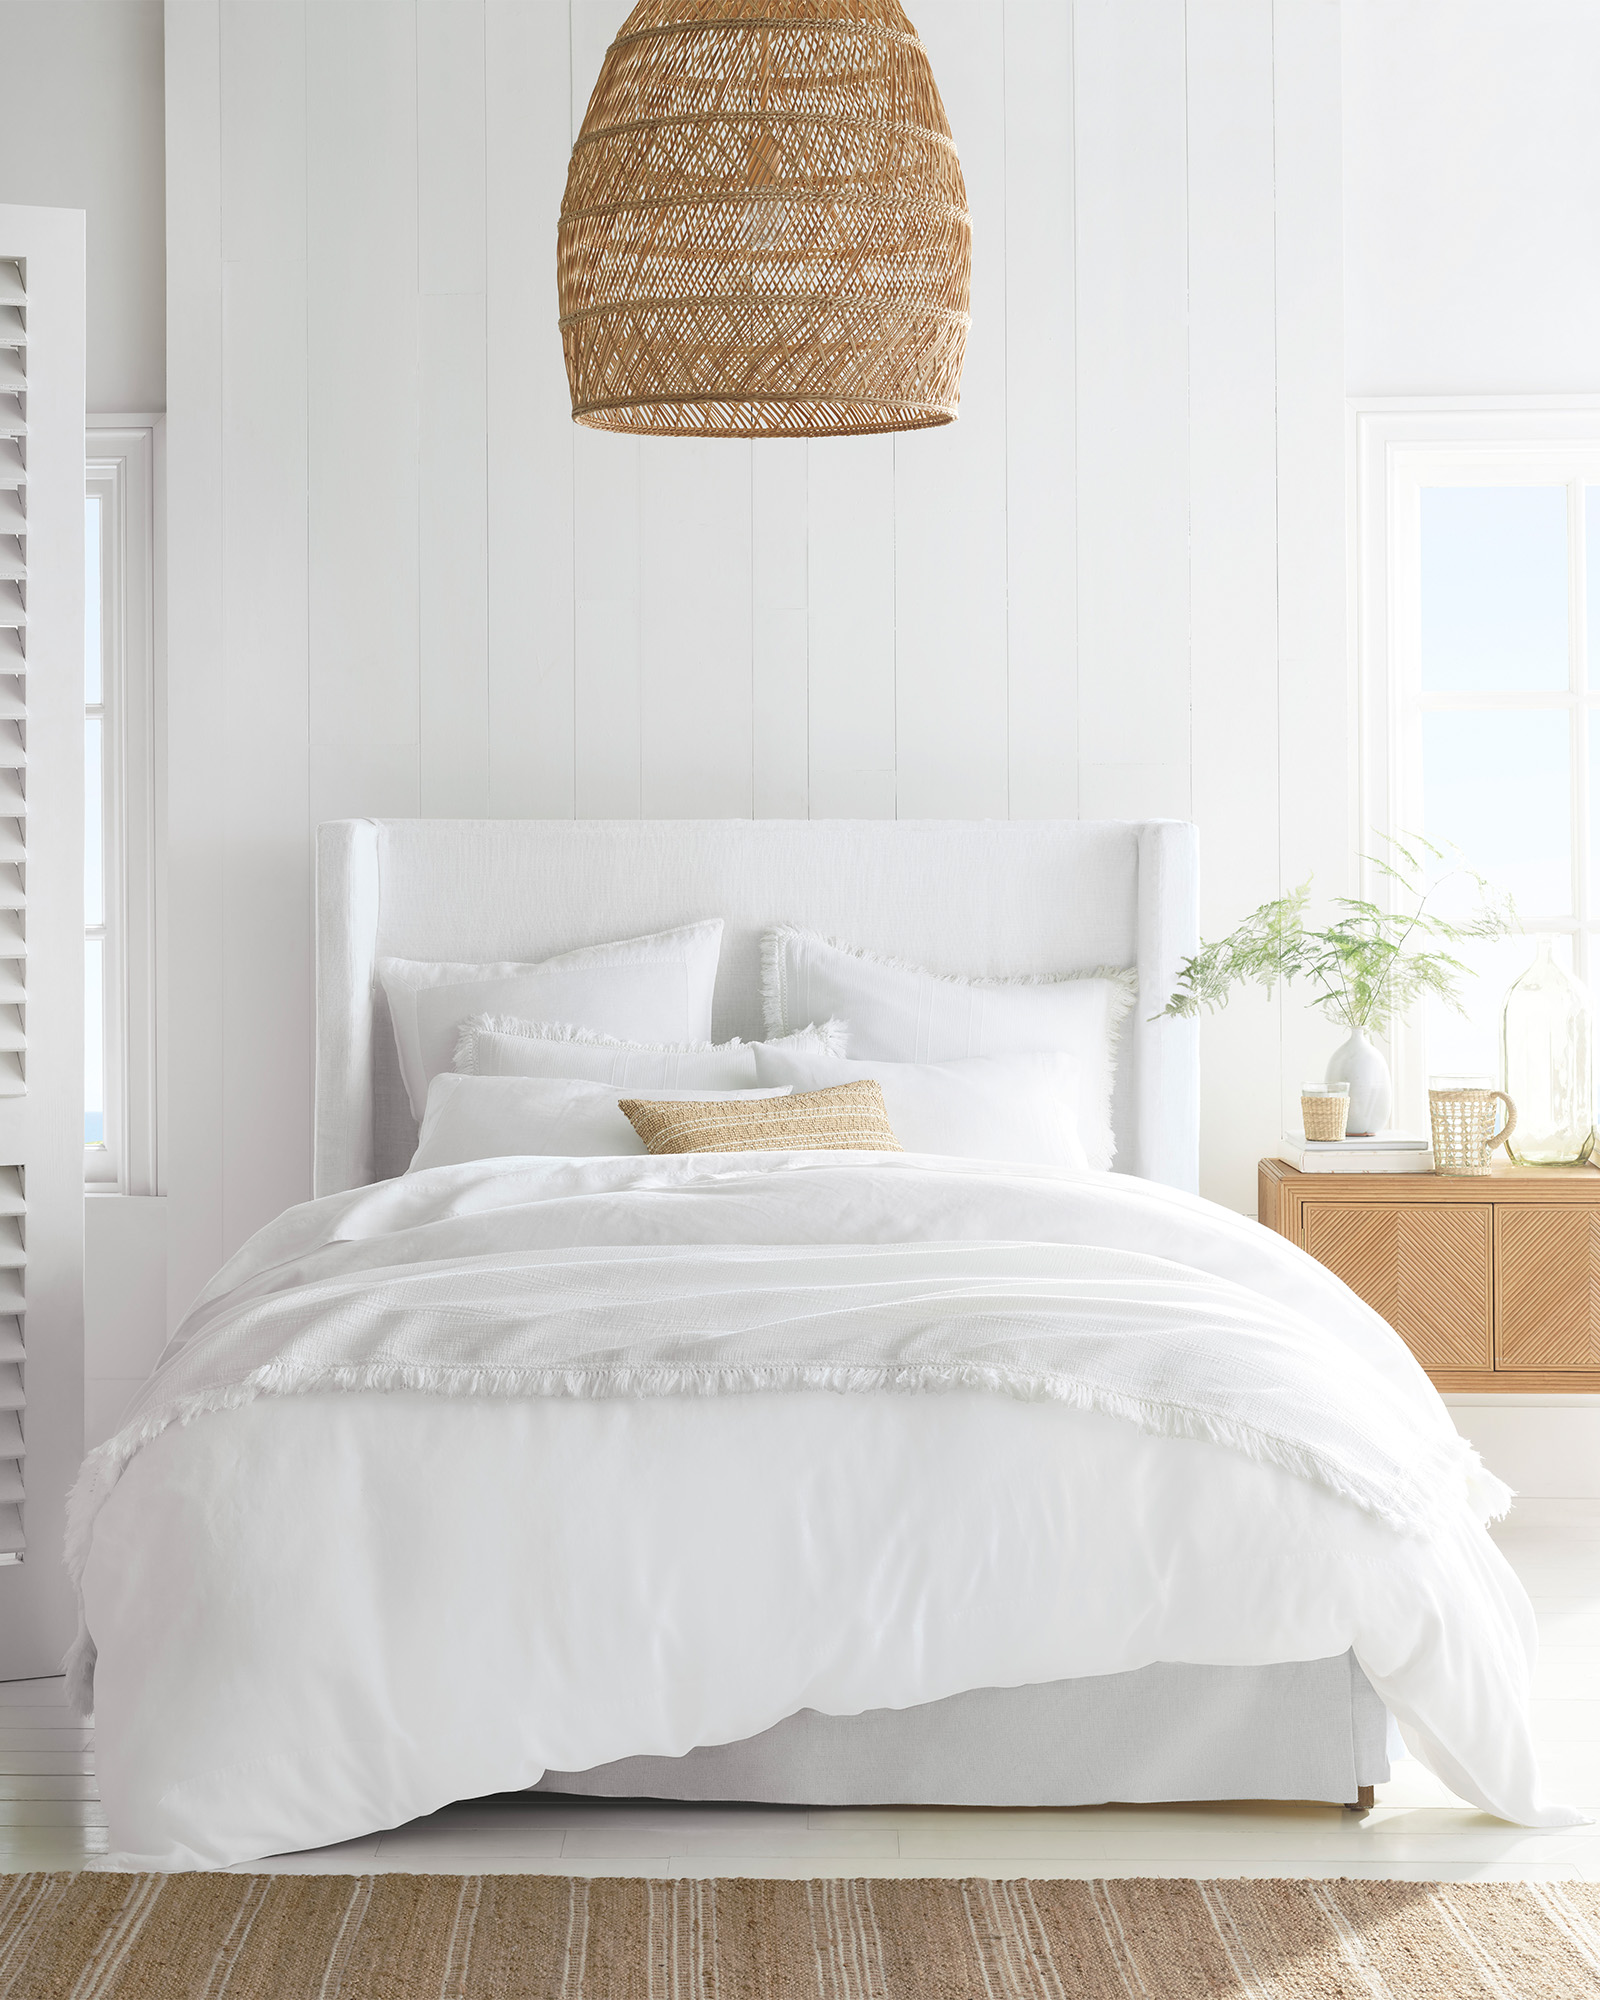 Whtie on white decor in a bedroom with rattan pendant light - Serena & Lily.